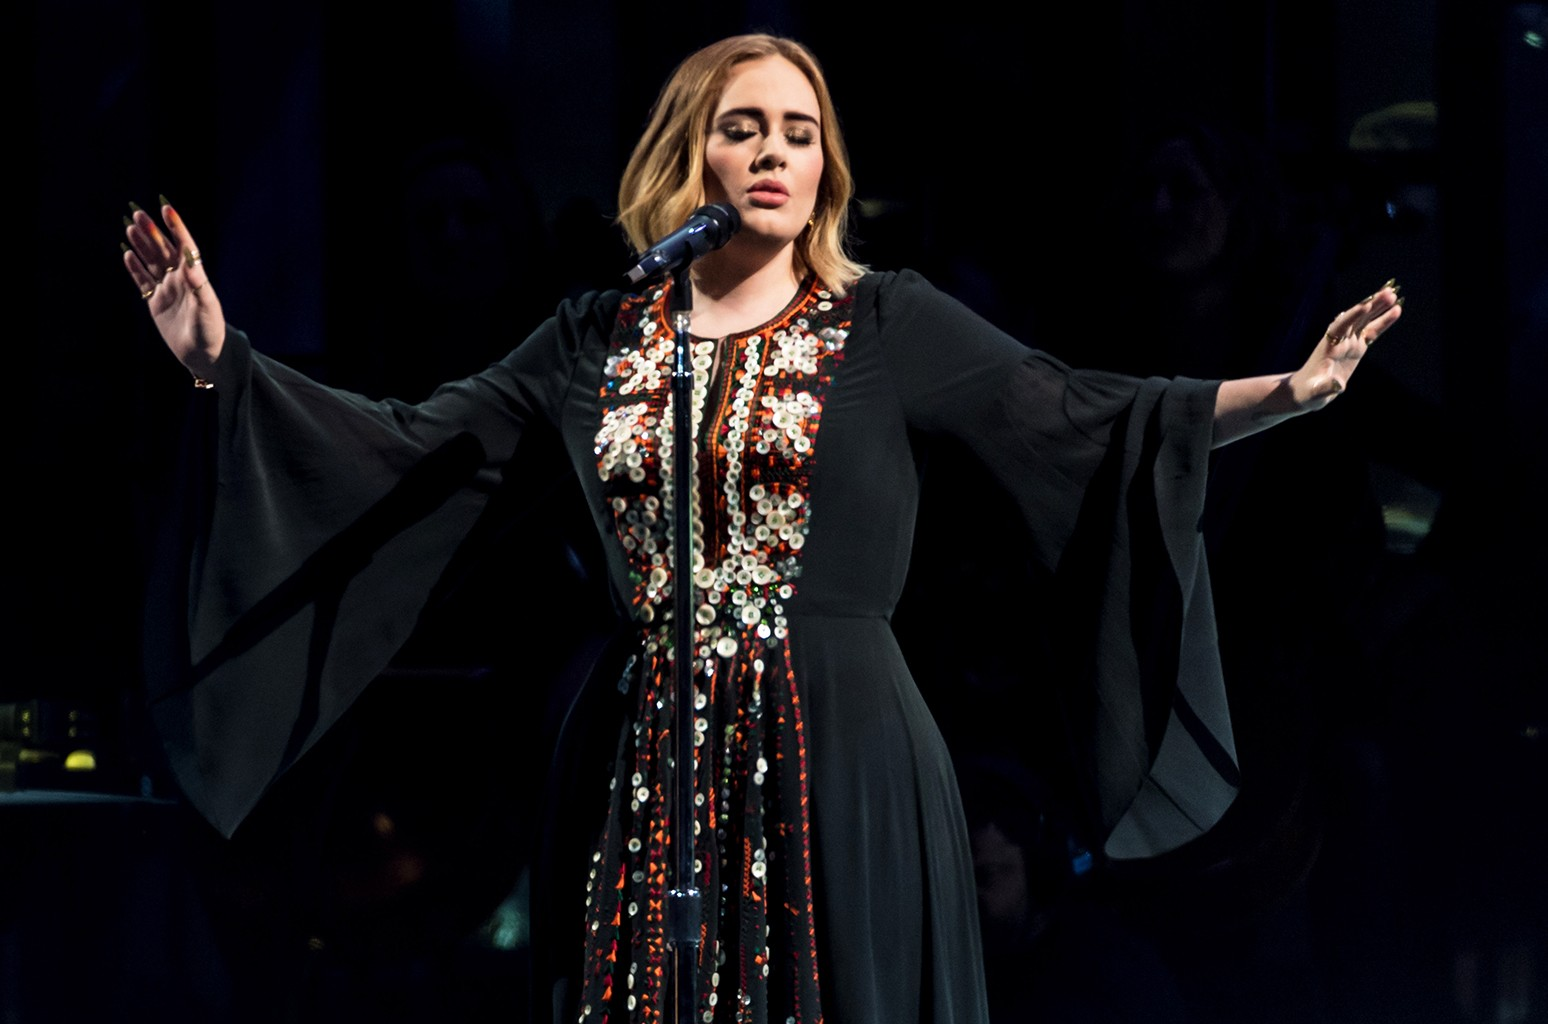 Adele performs at Glastonbury 2016